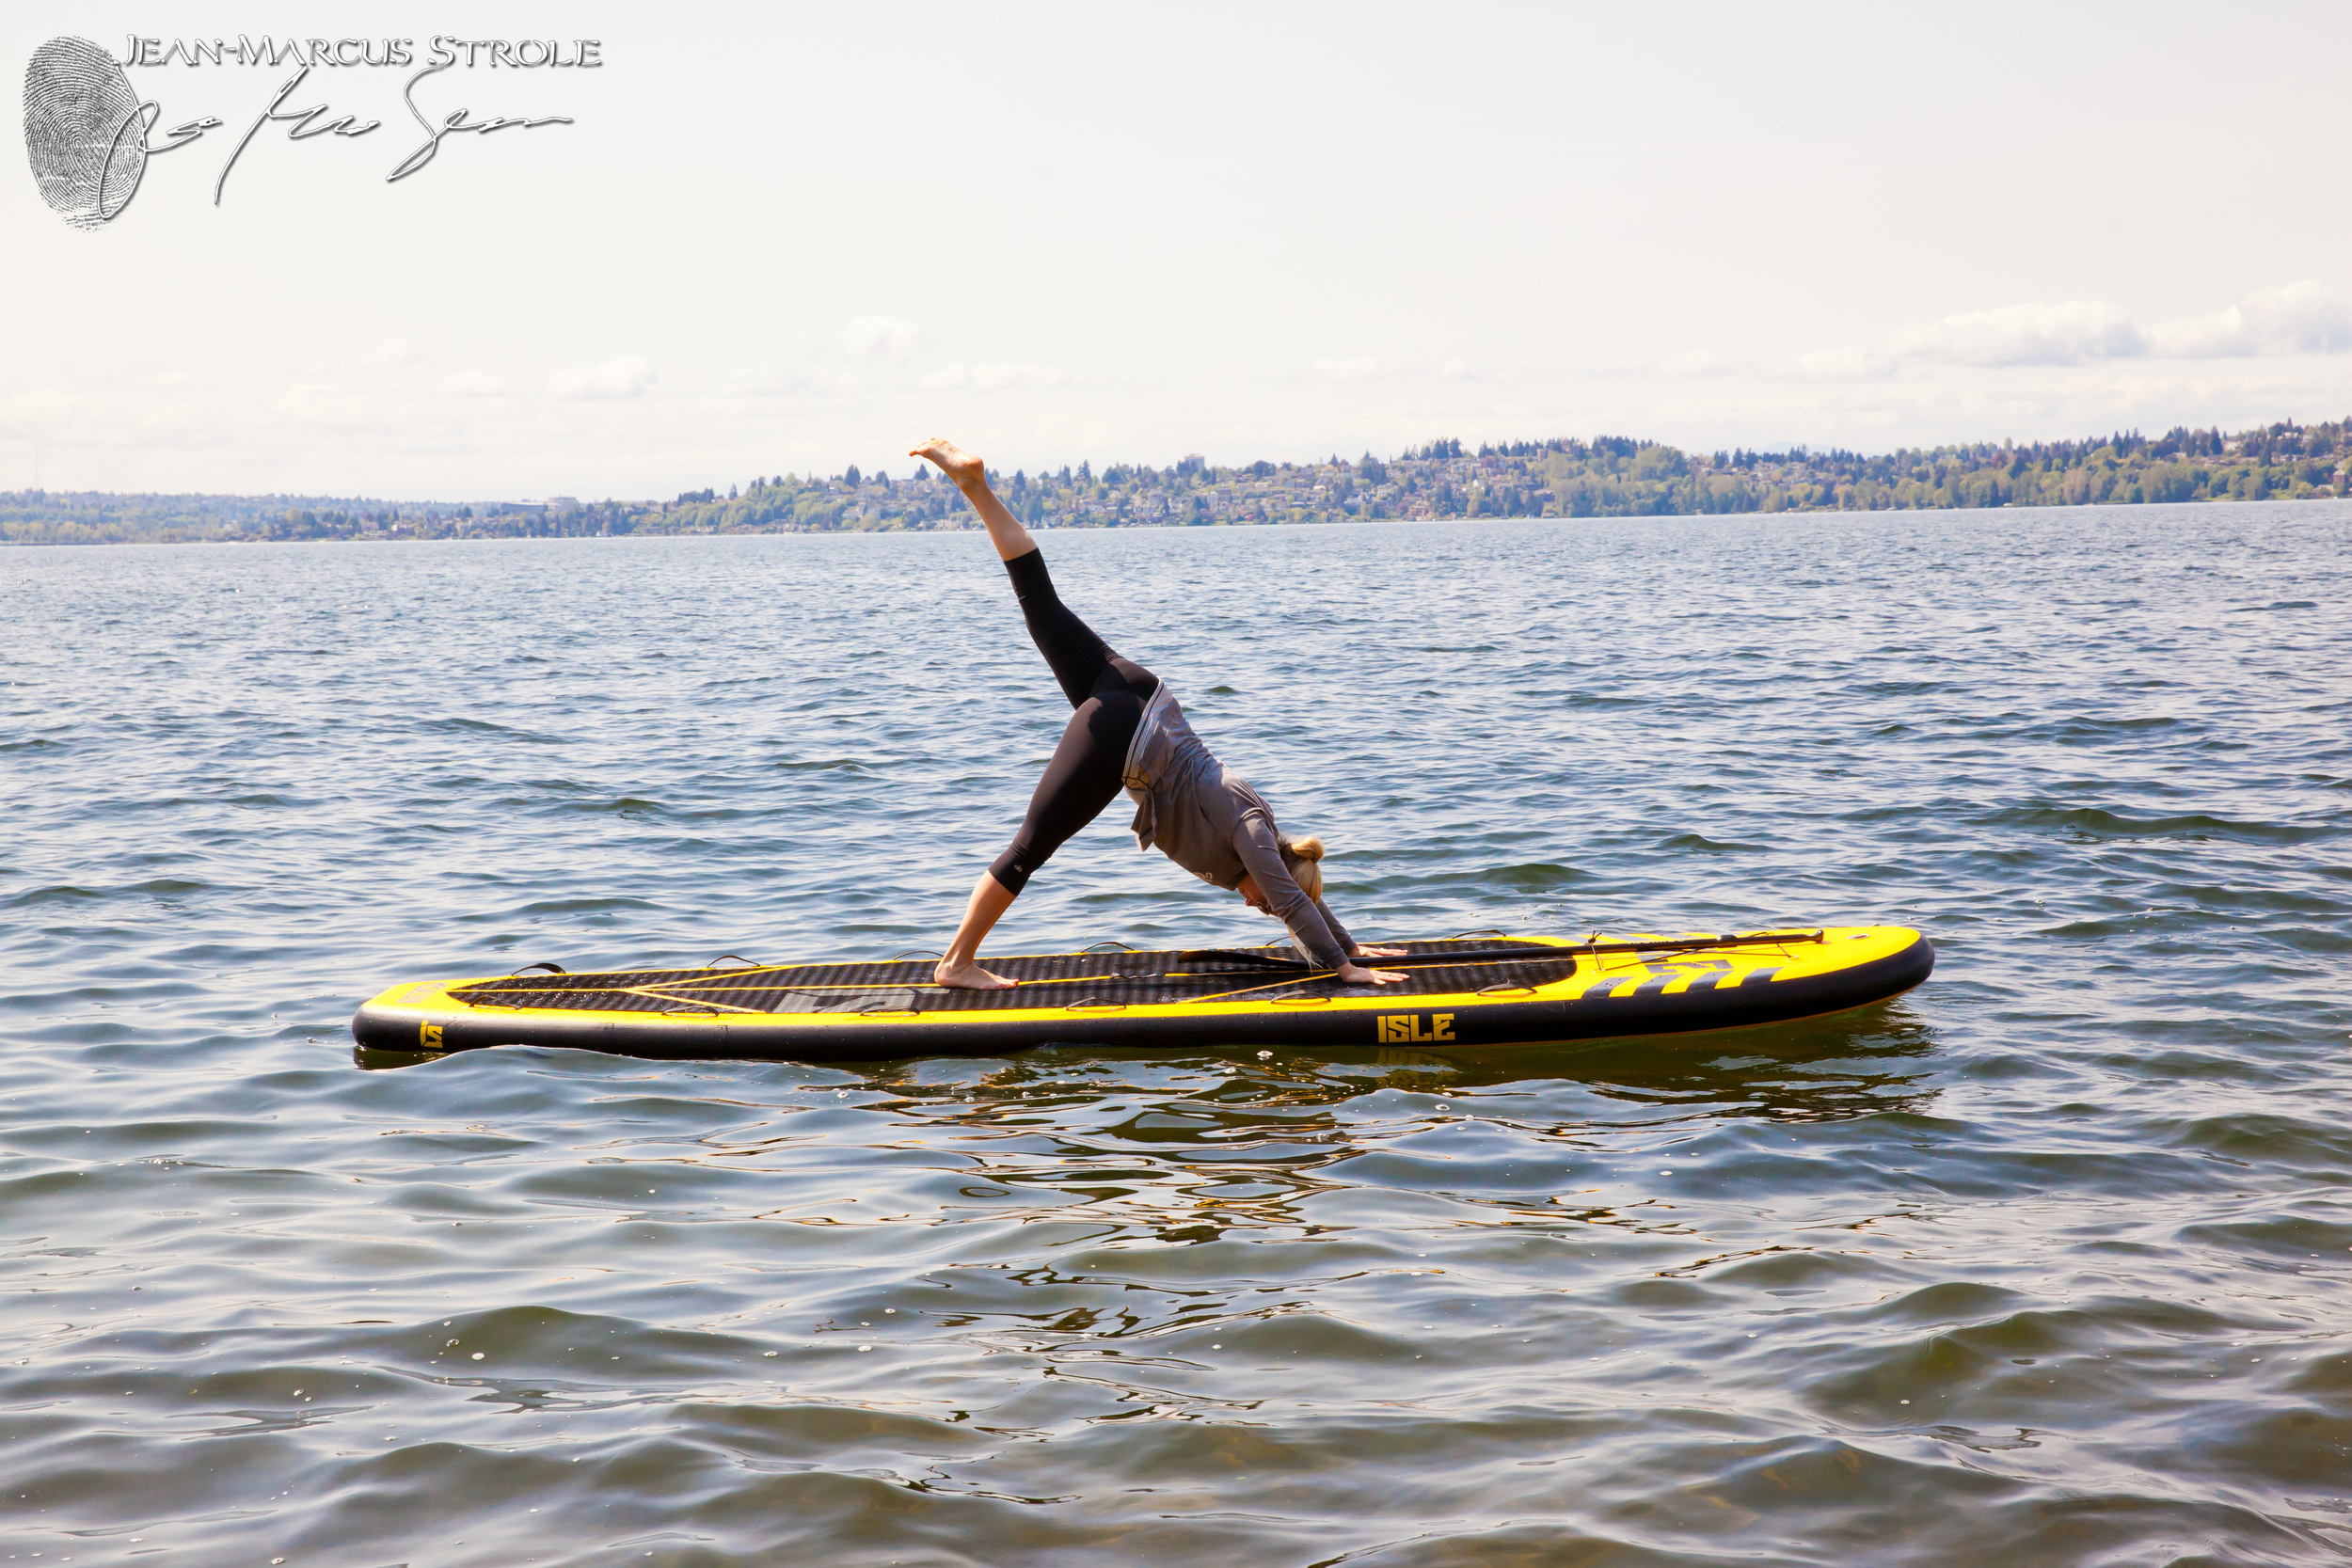 Carillon_Point_Waterfront_Adventures-Jean-Marcus_Strole_Photography-70.jpg